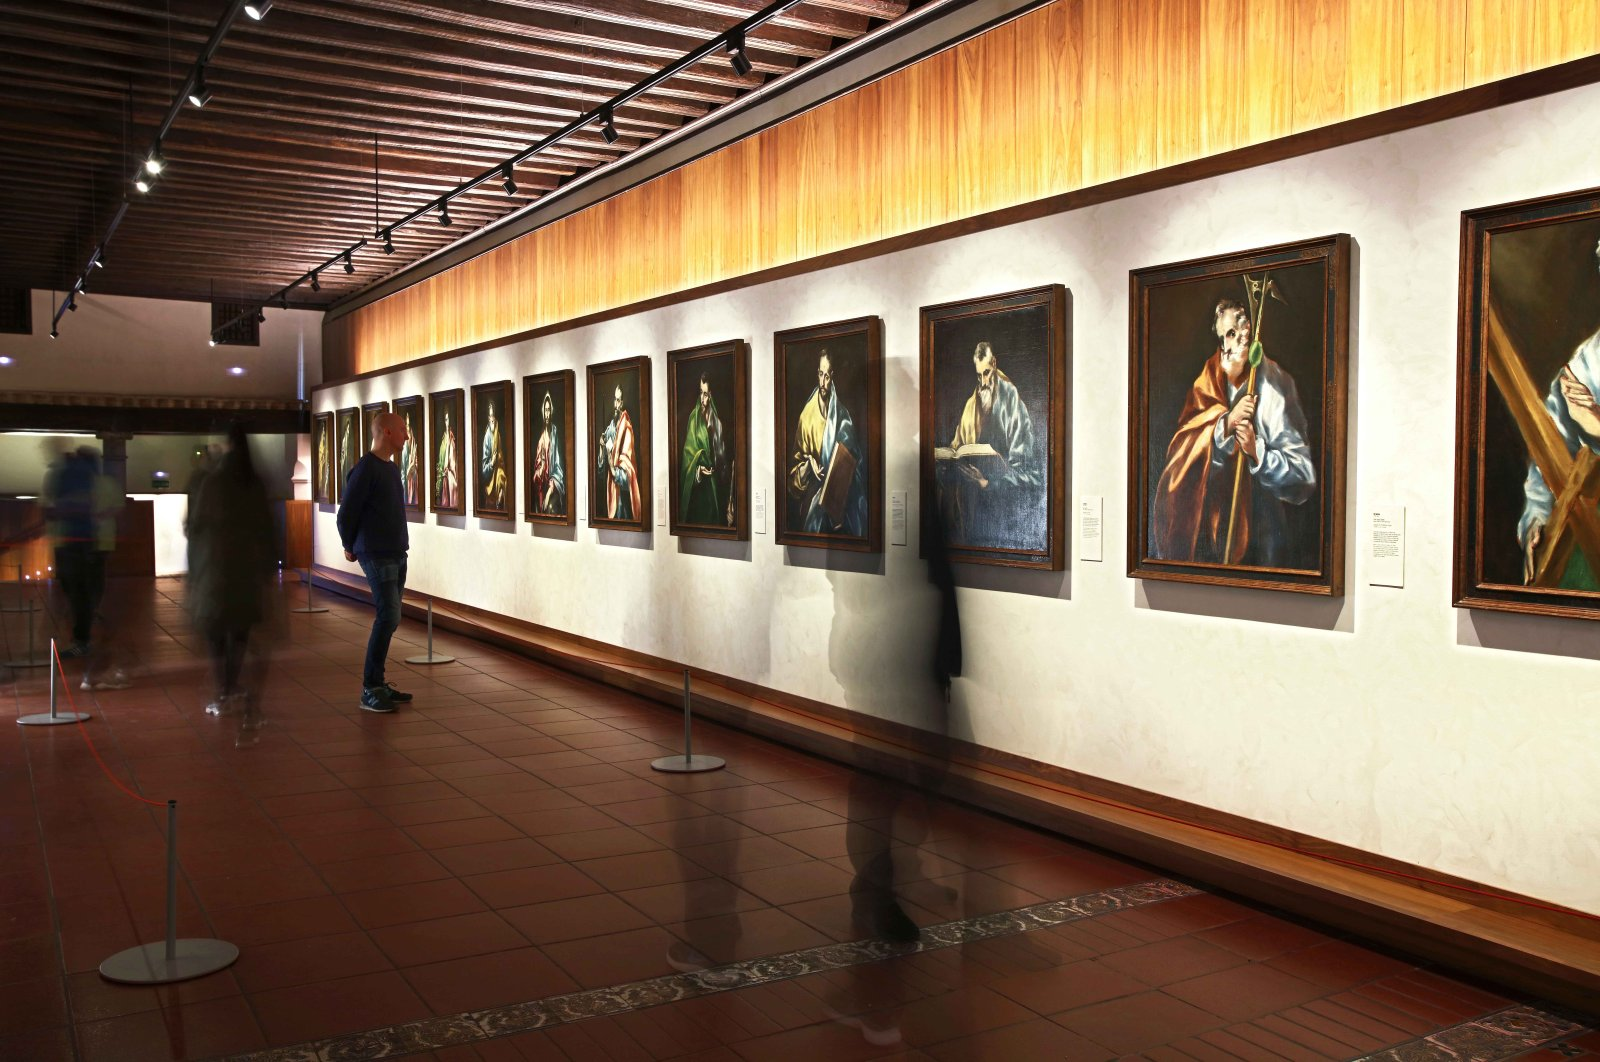 In the Museo del Greco Toledo, visitors can see the unmistakeable style of El Greco for themselves. (DPA Photo)